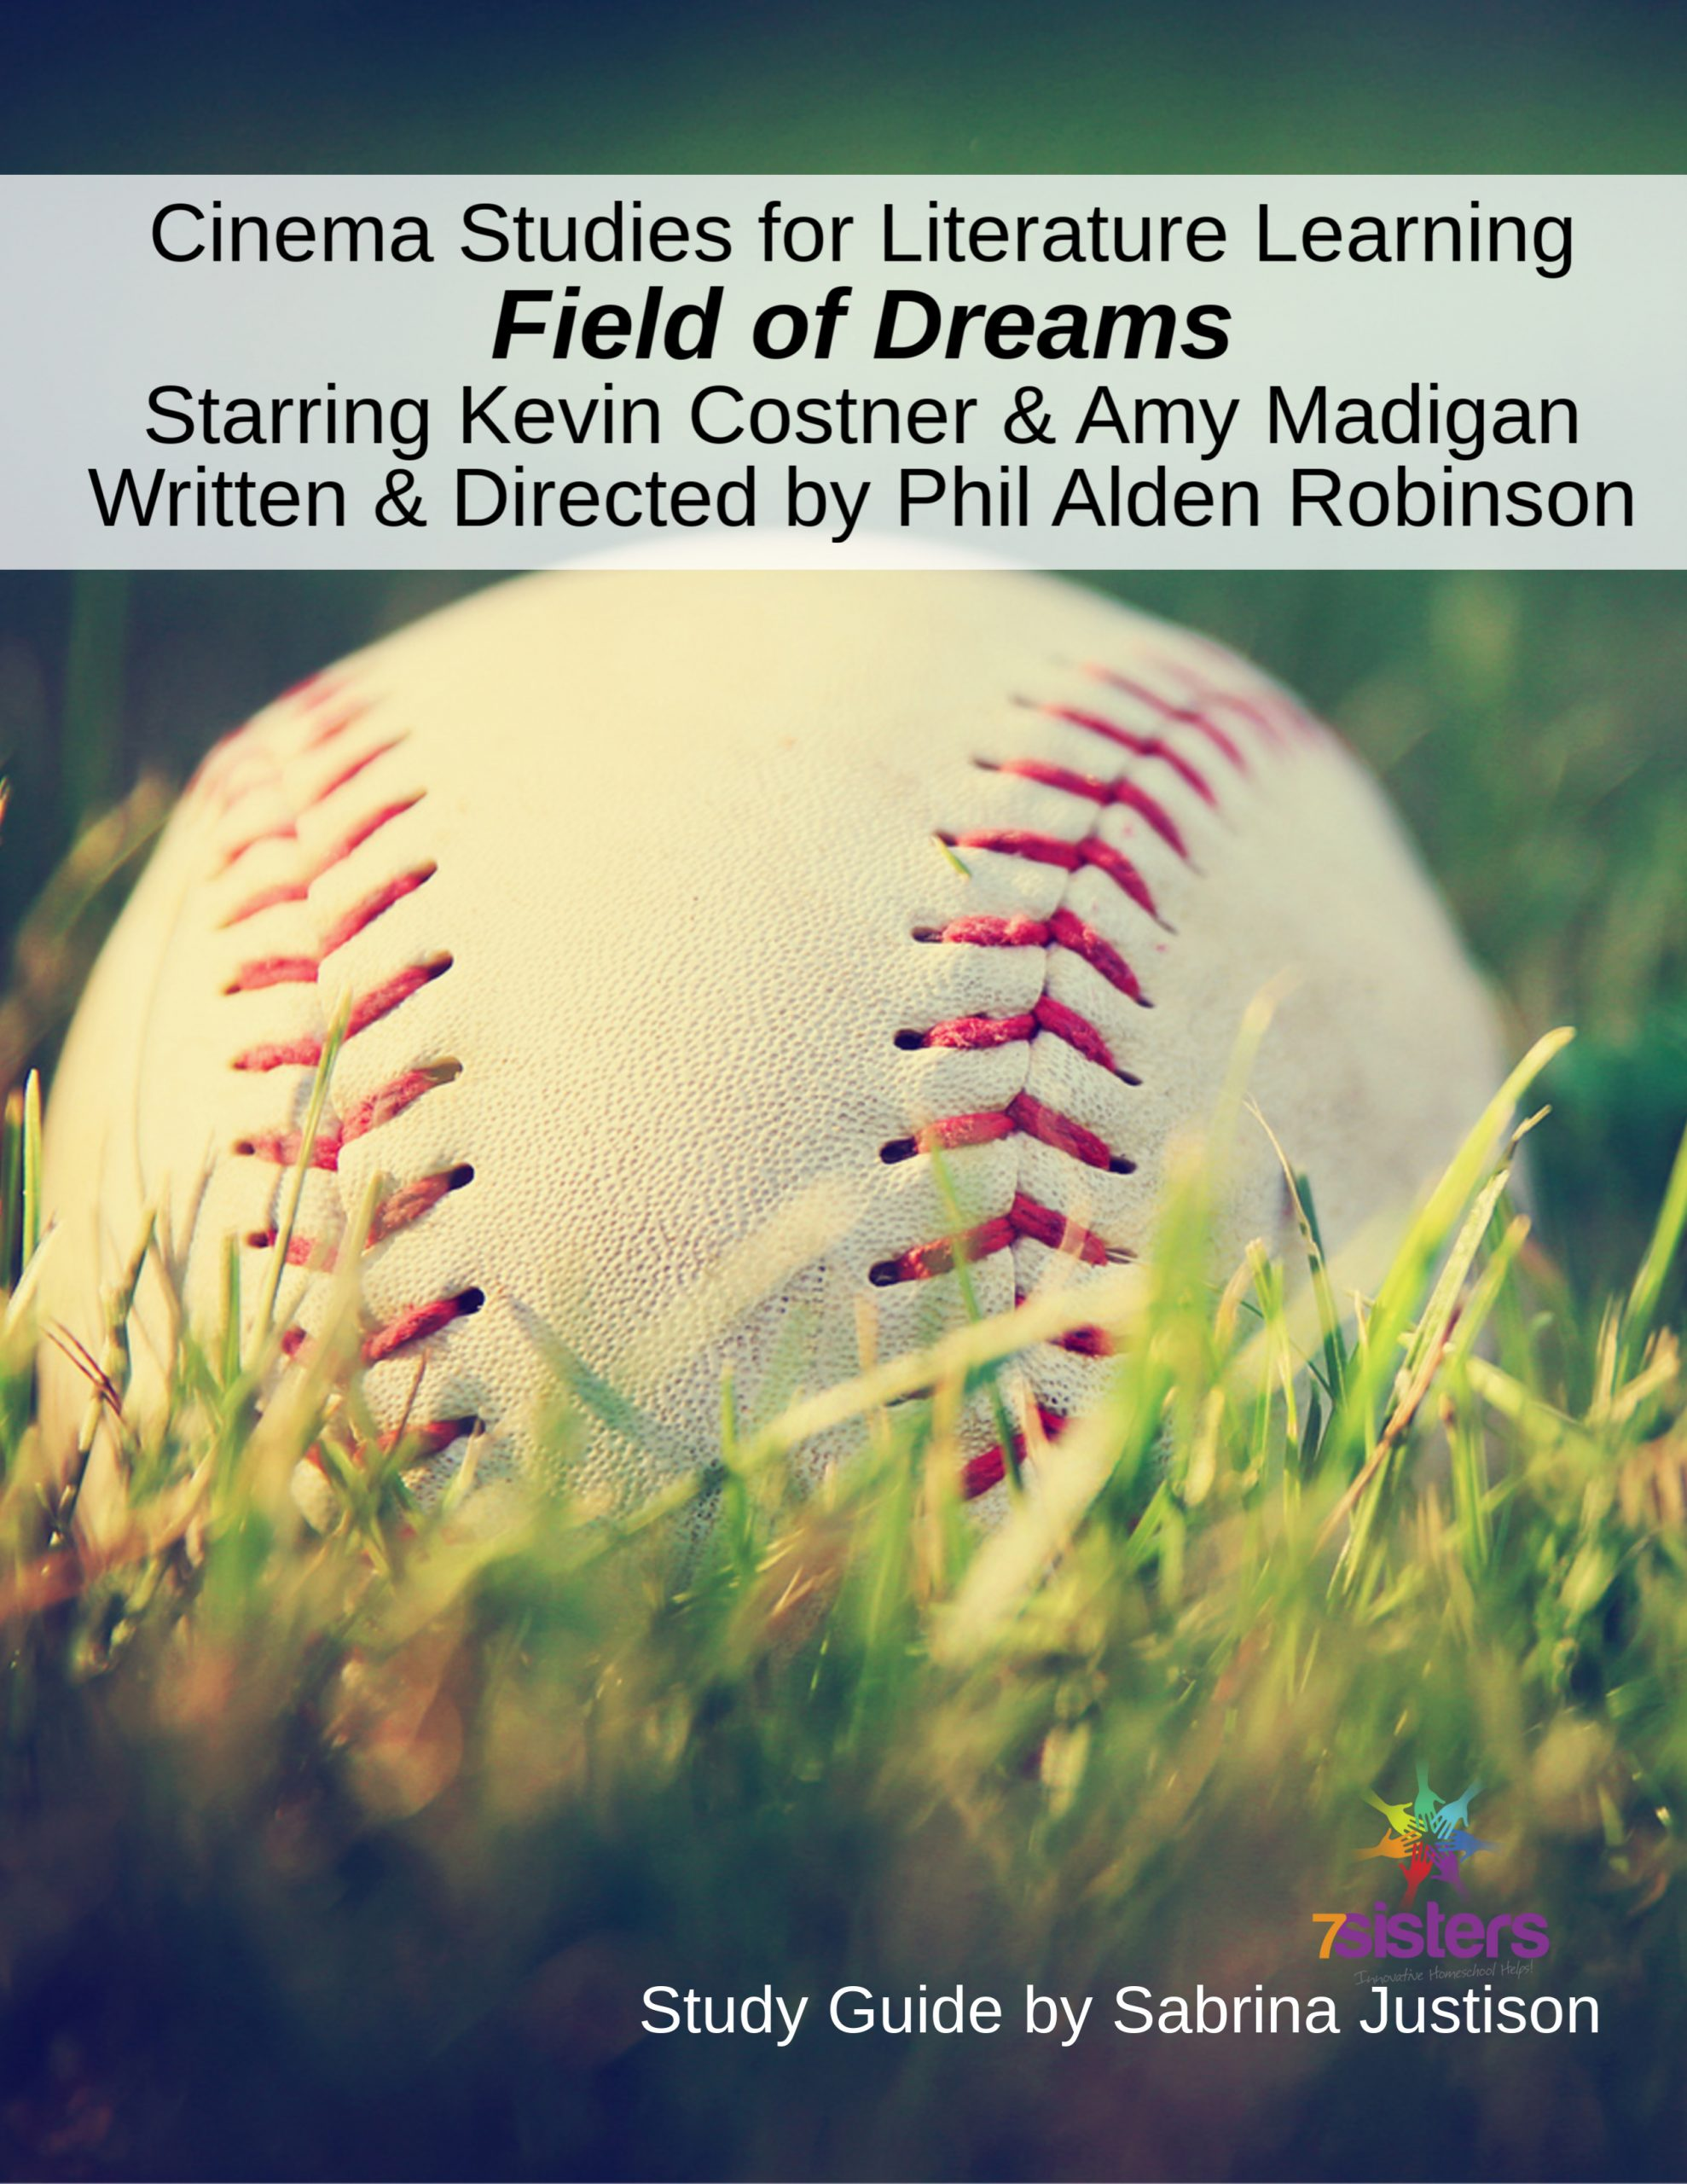 Cinema Study Guide for Field of Dreams